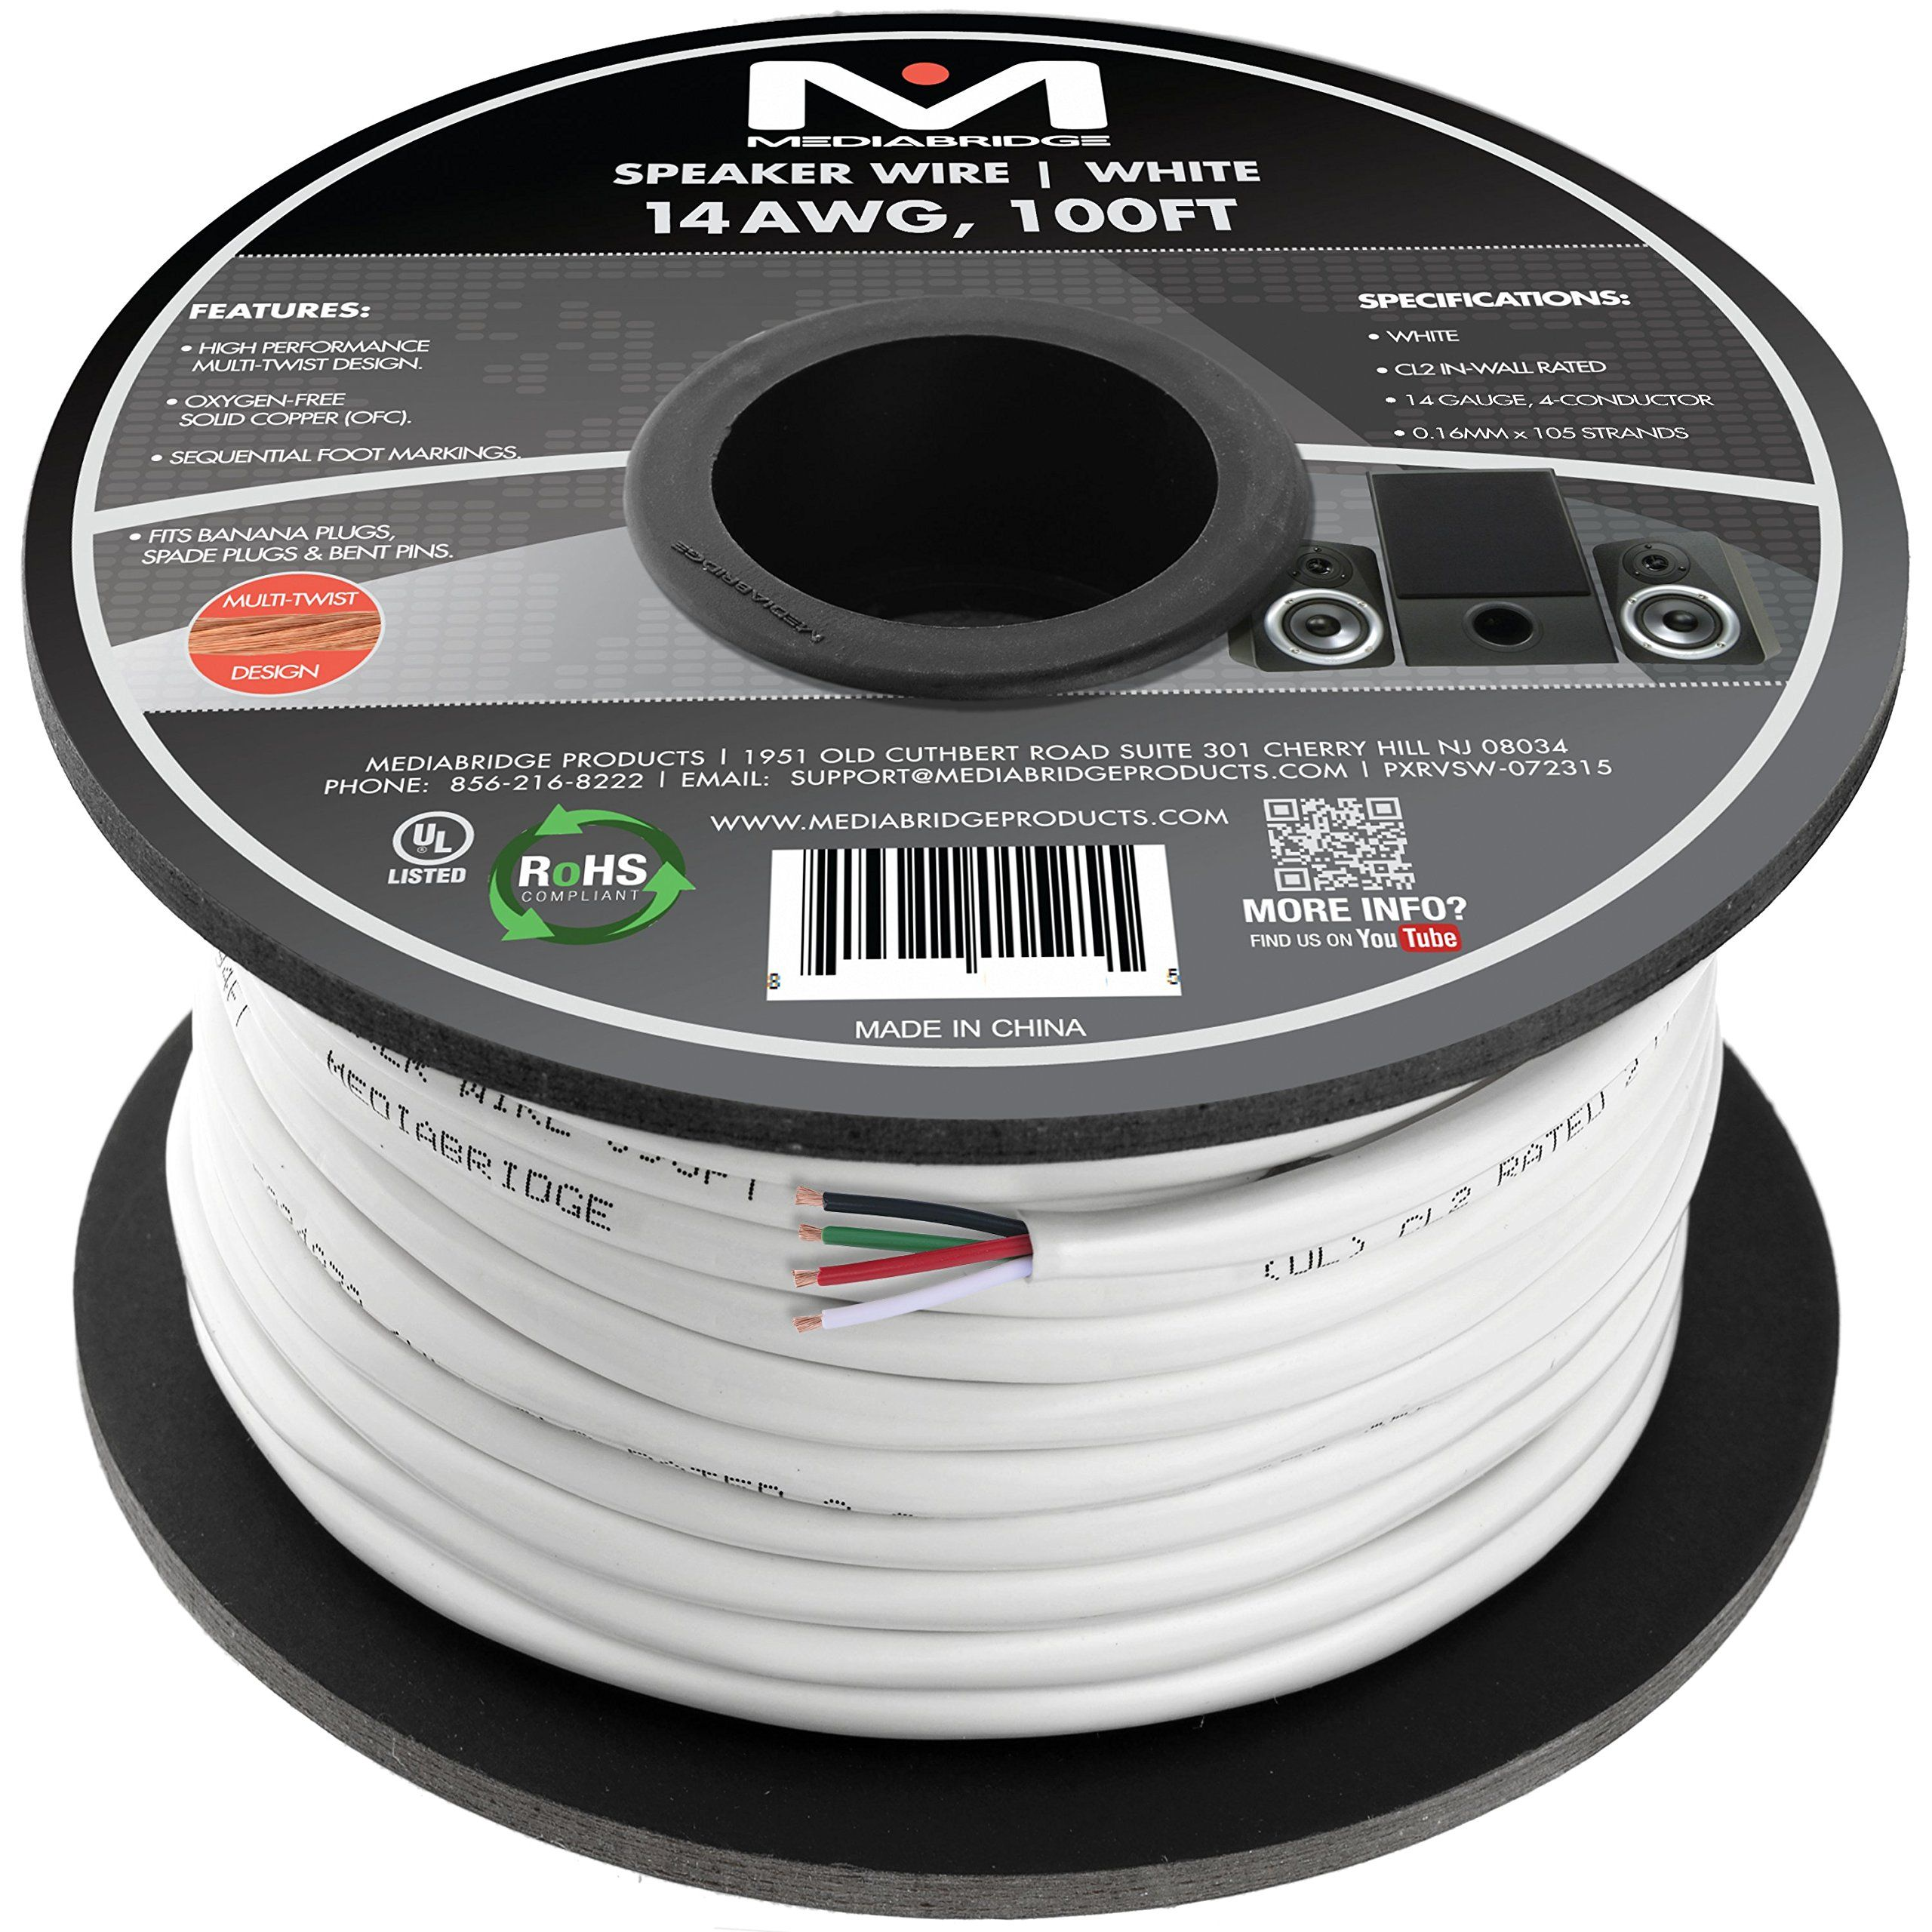 Mediabridge 14awg 4 conductor speaker wire 100 feet white mediabridge speaker wire feet white oxygen free copper ul listed rated for in wall use part greentooth Image collections